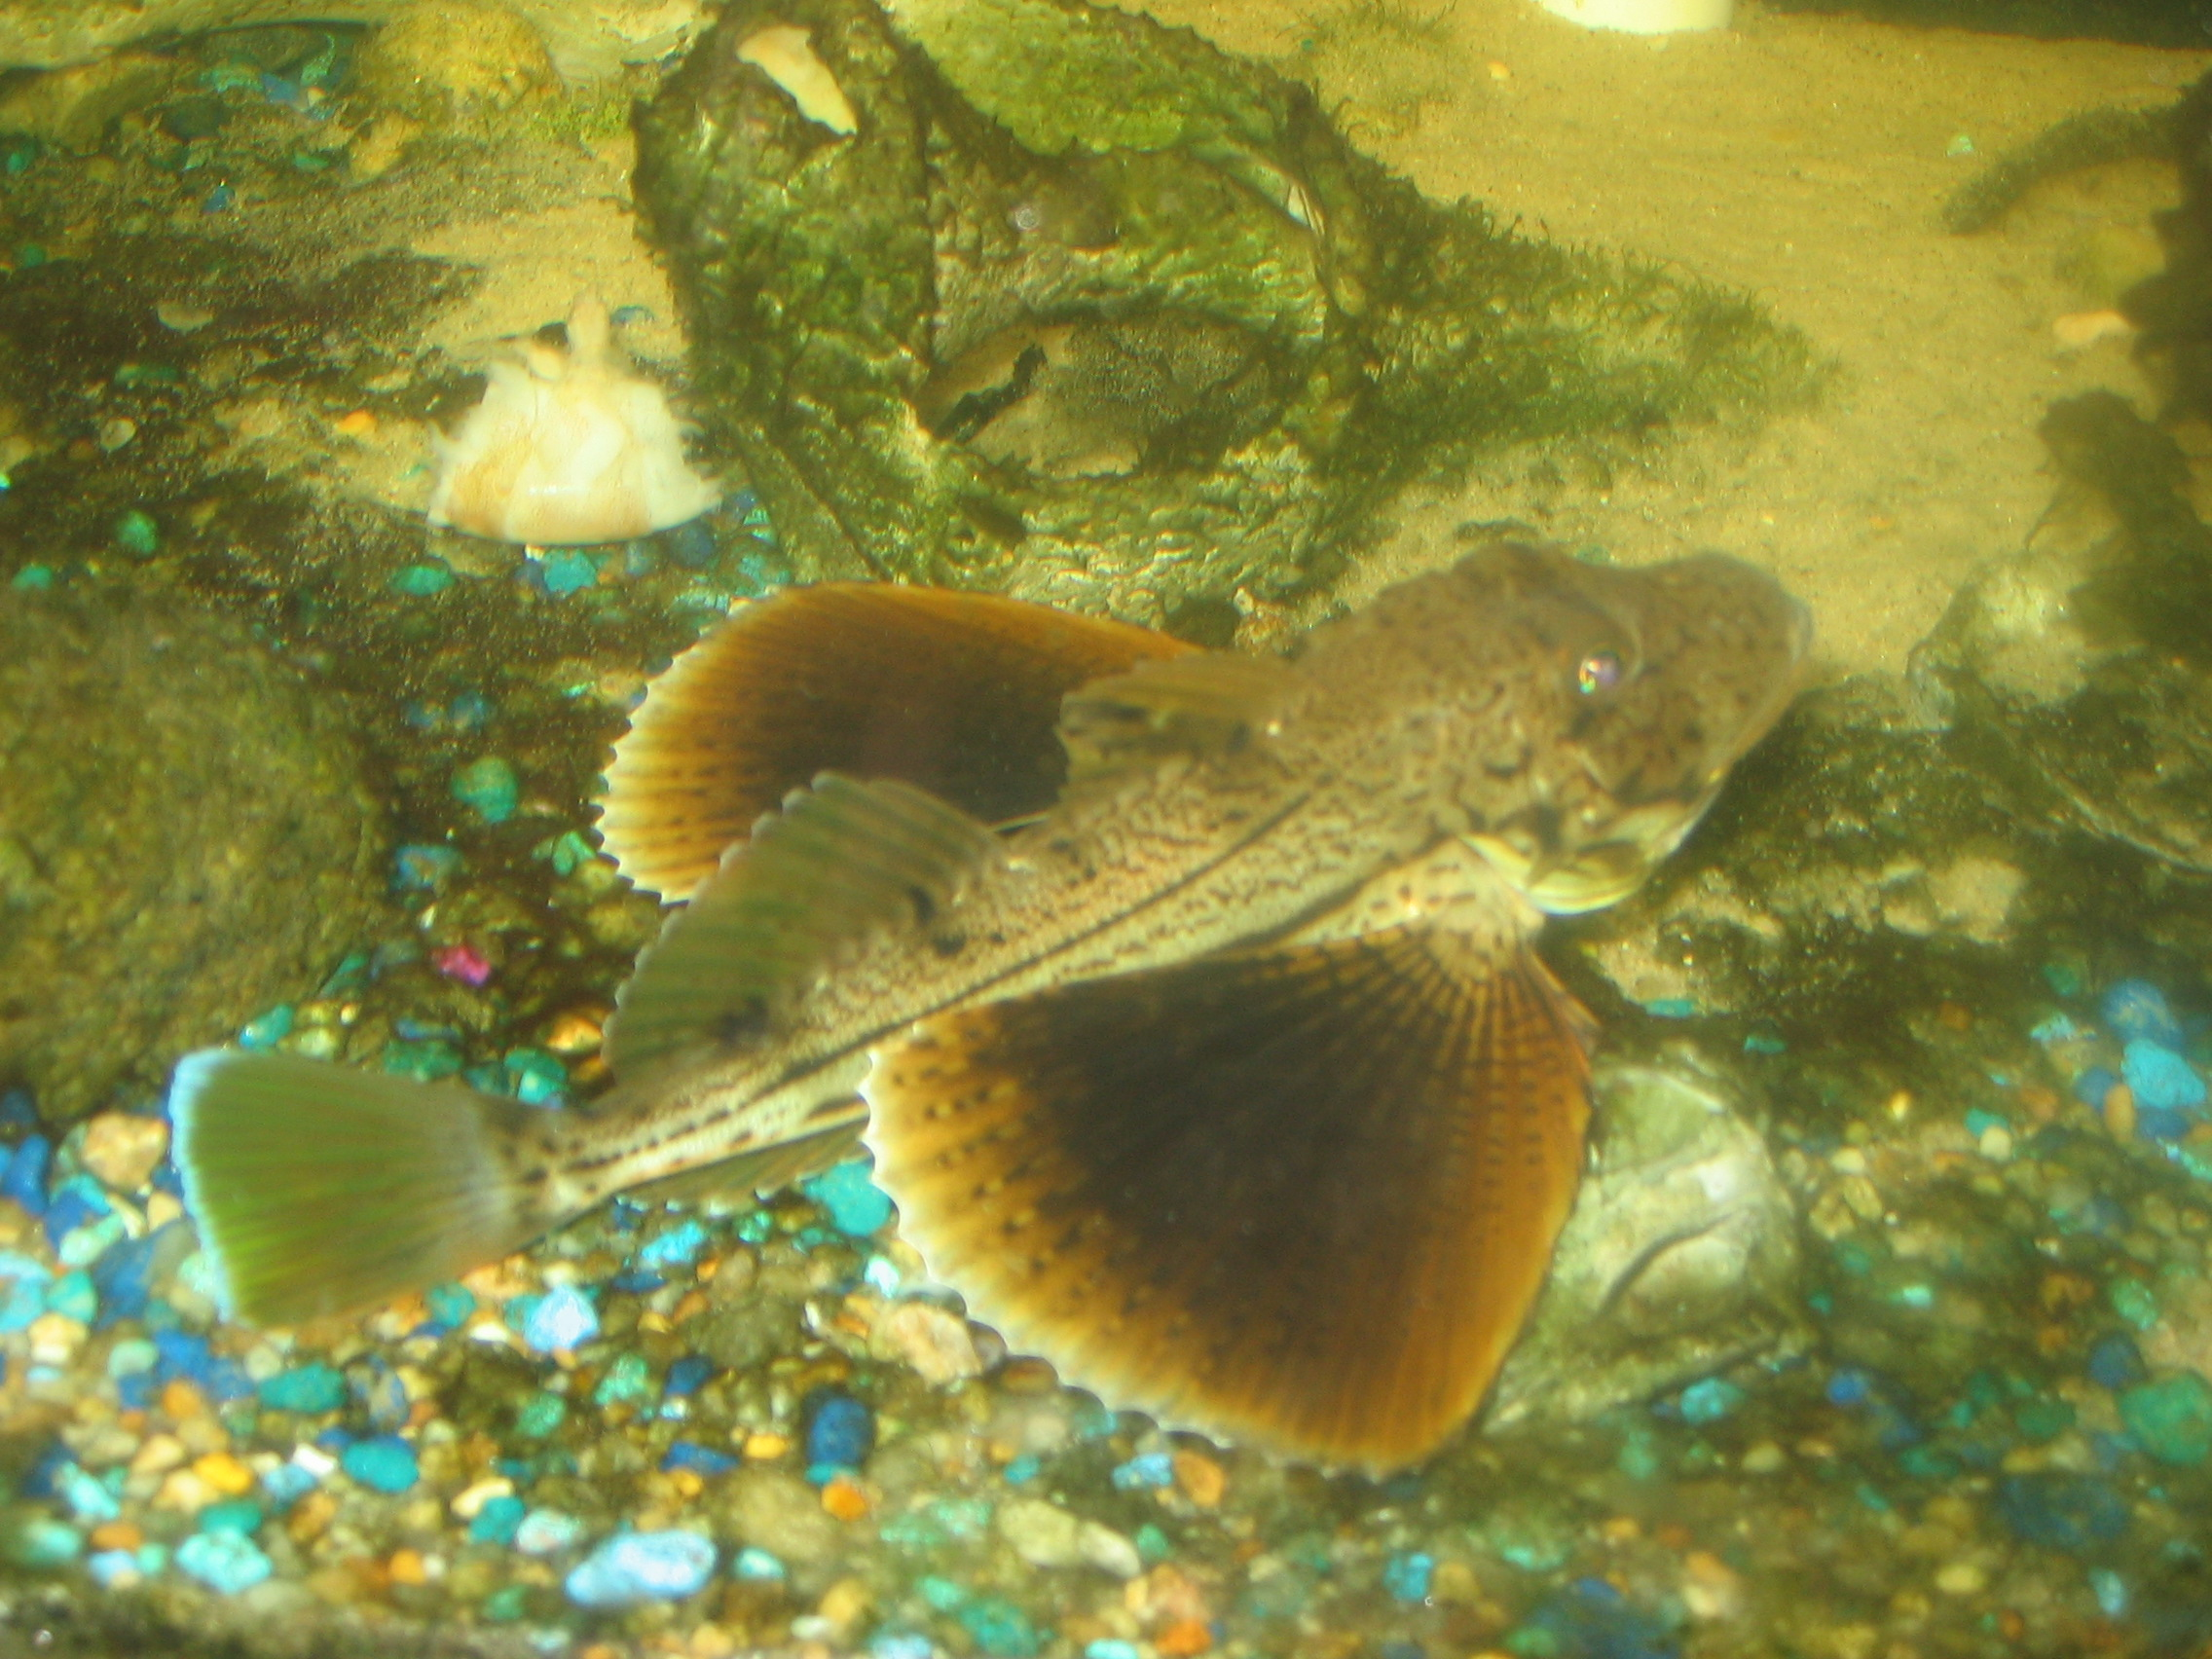 Prionotus evolans